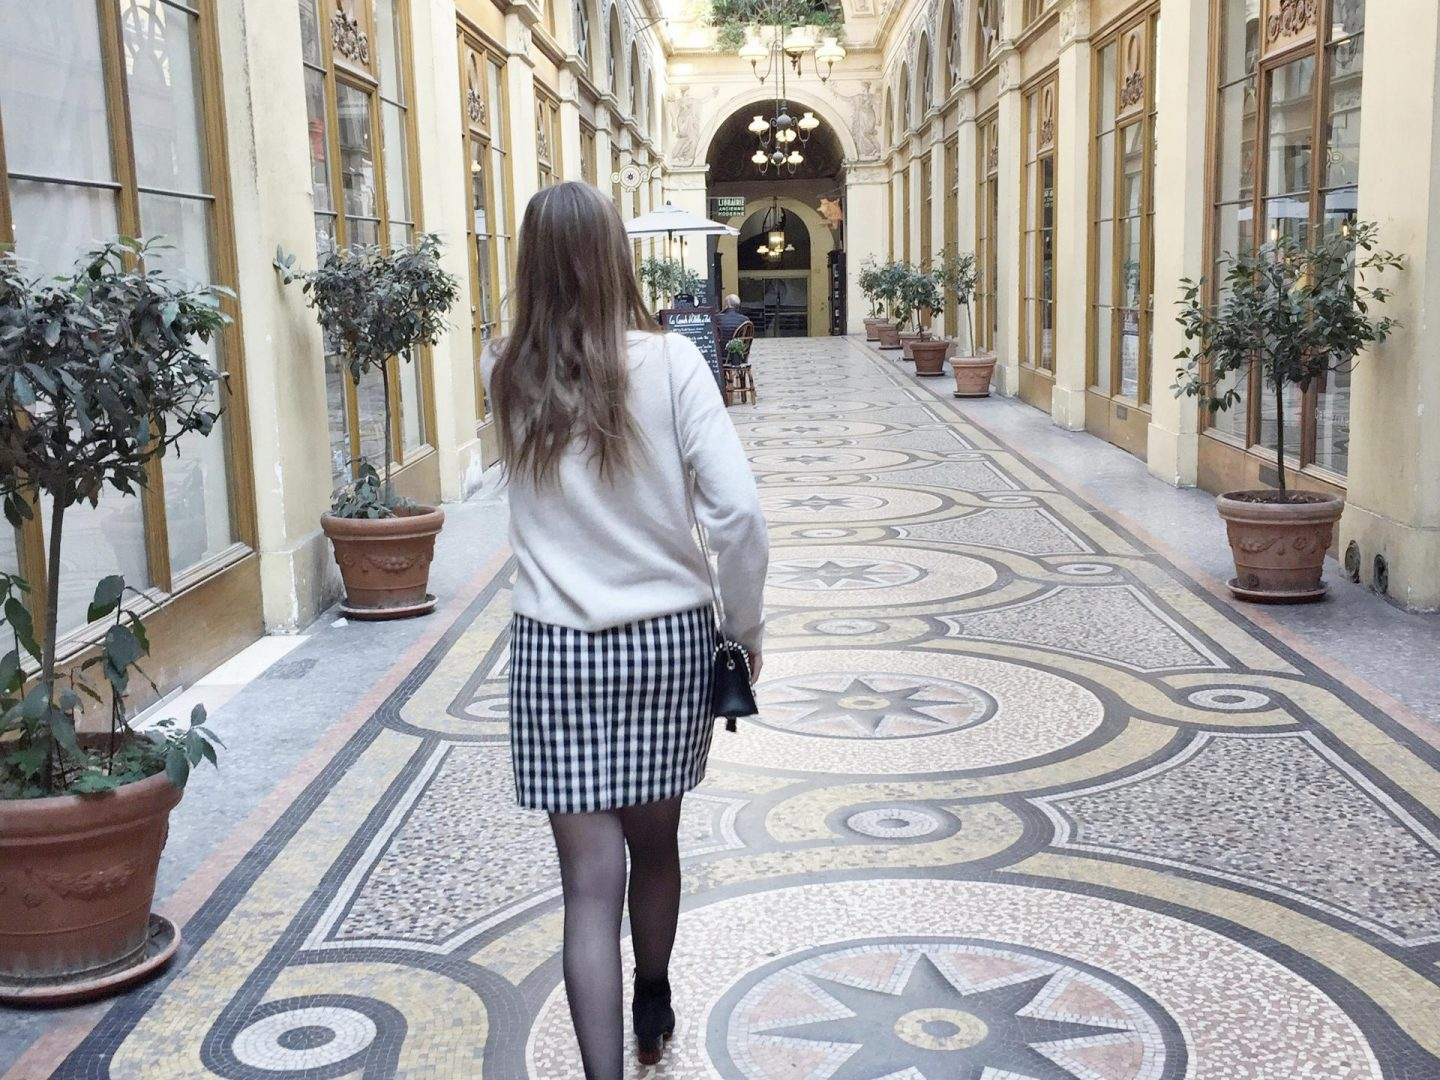 Ruffles-in-paris-ootd-outfit-Paris-blogger-bymeryl-fashion